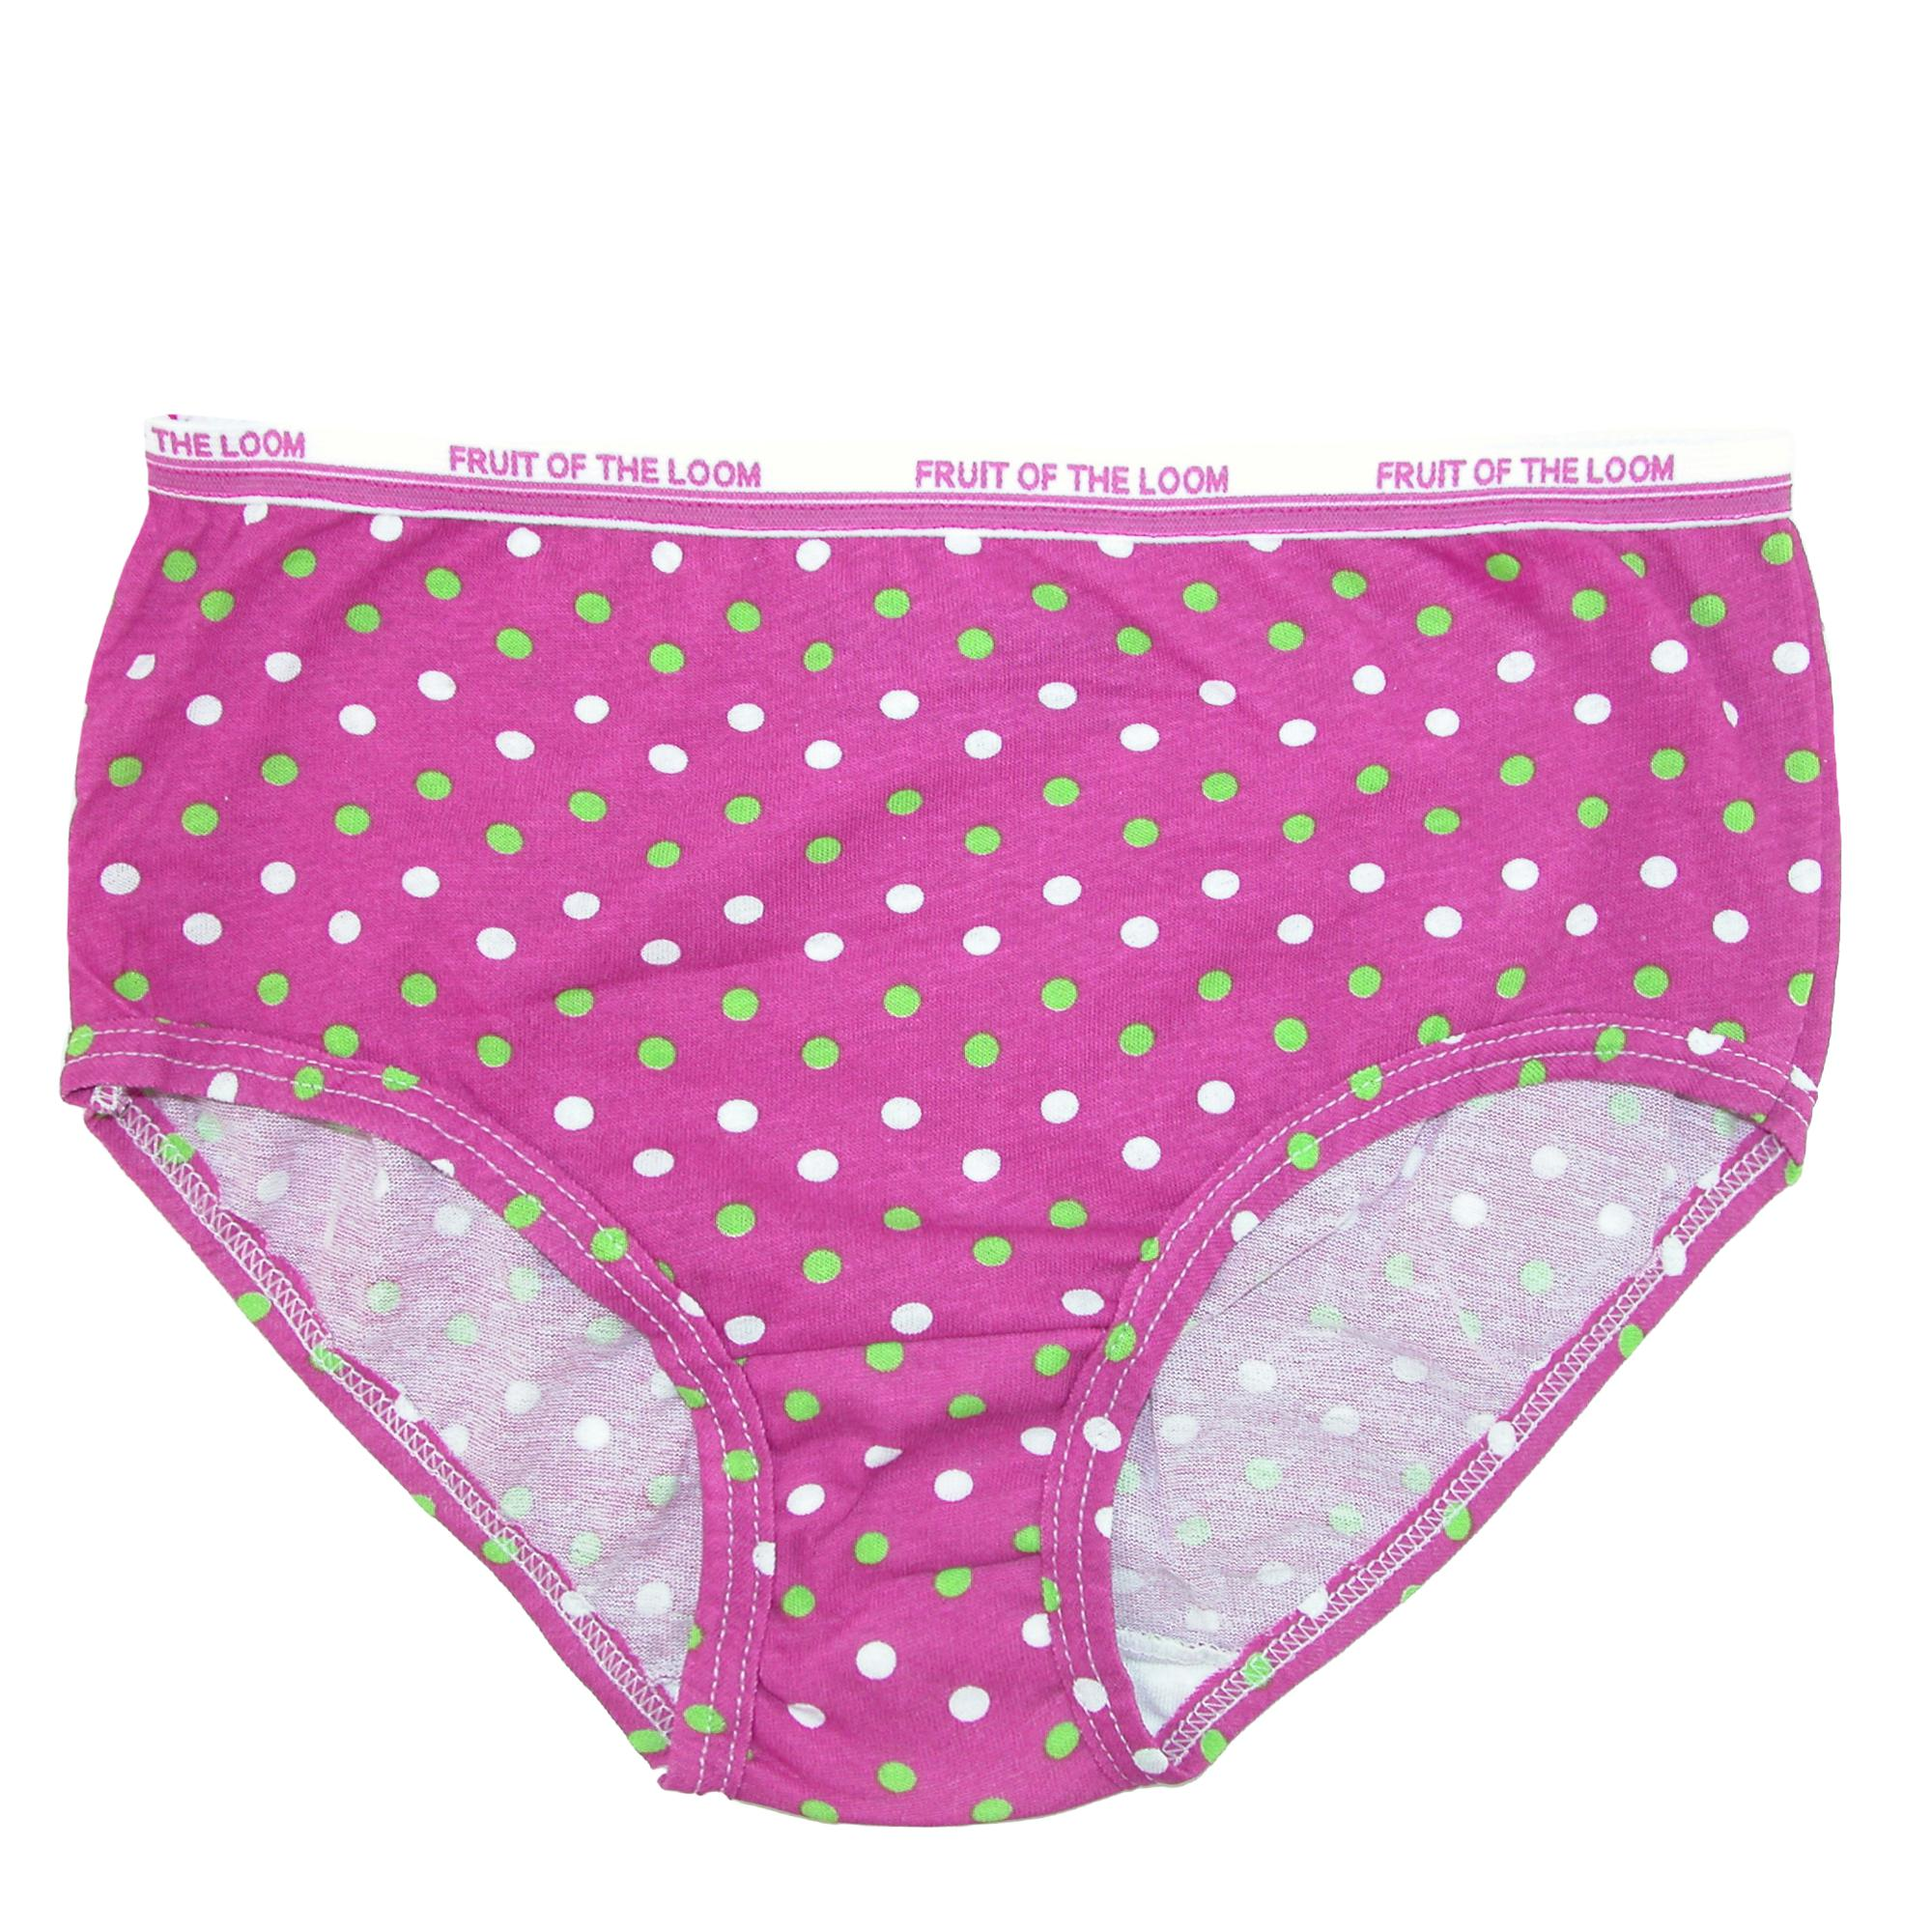 Pack of 6 New Fruit of the Loom Girl/'s Cotton Briefs Underwear